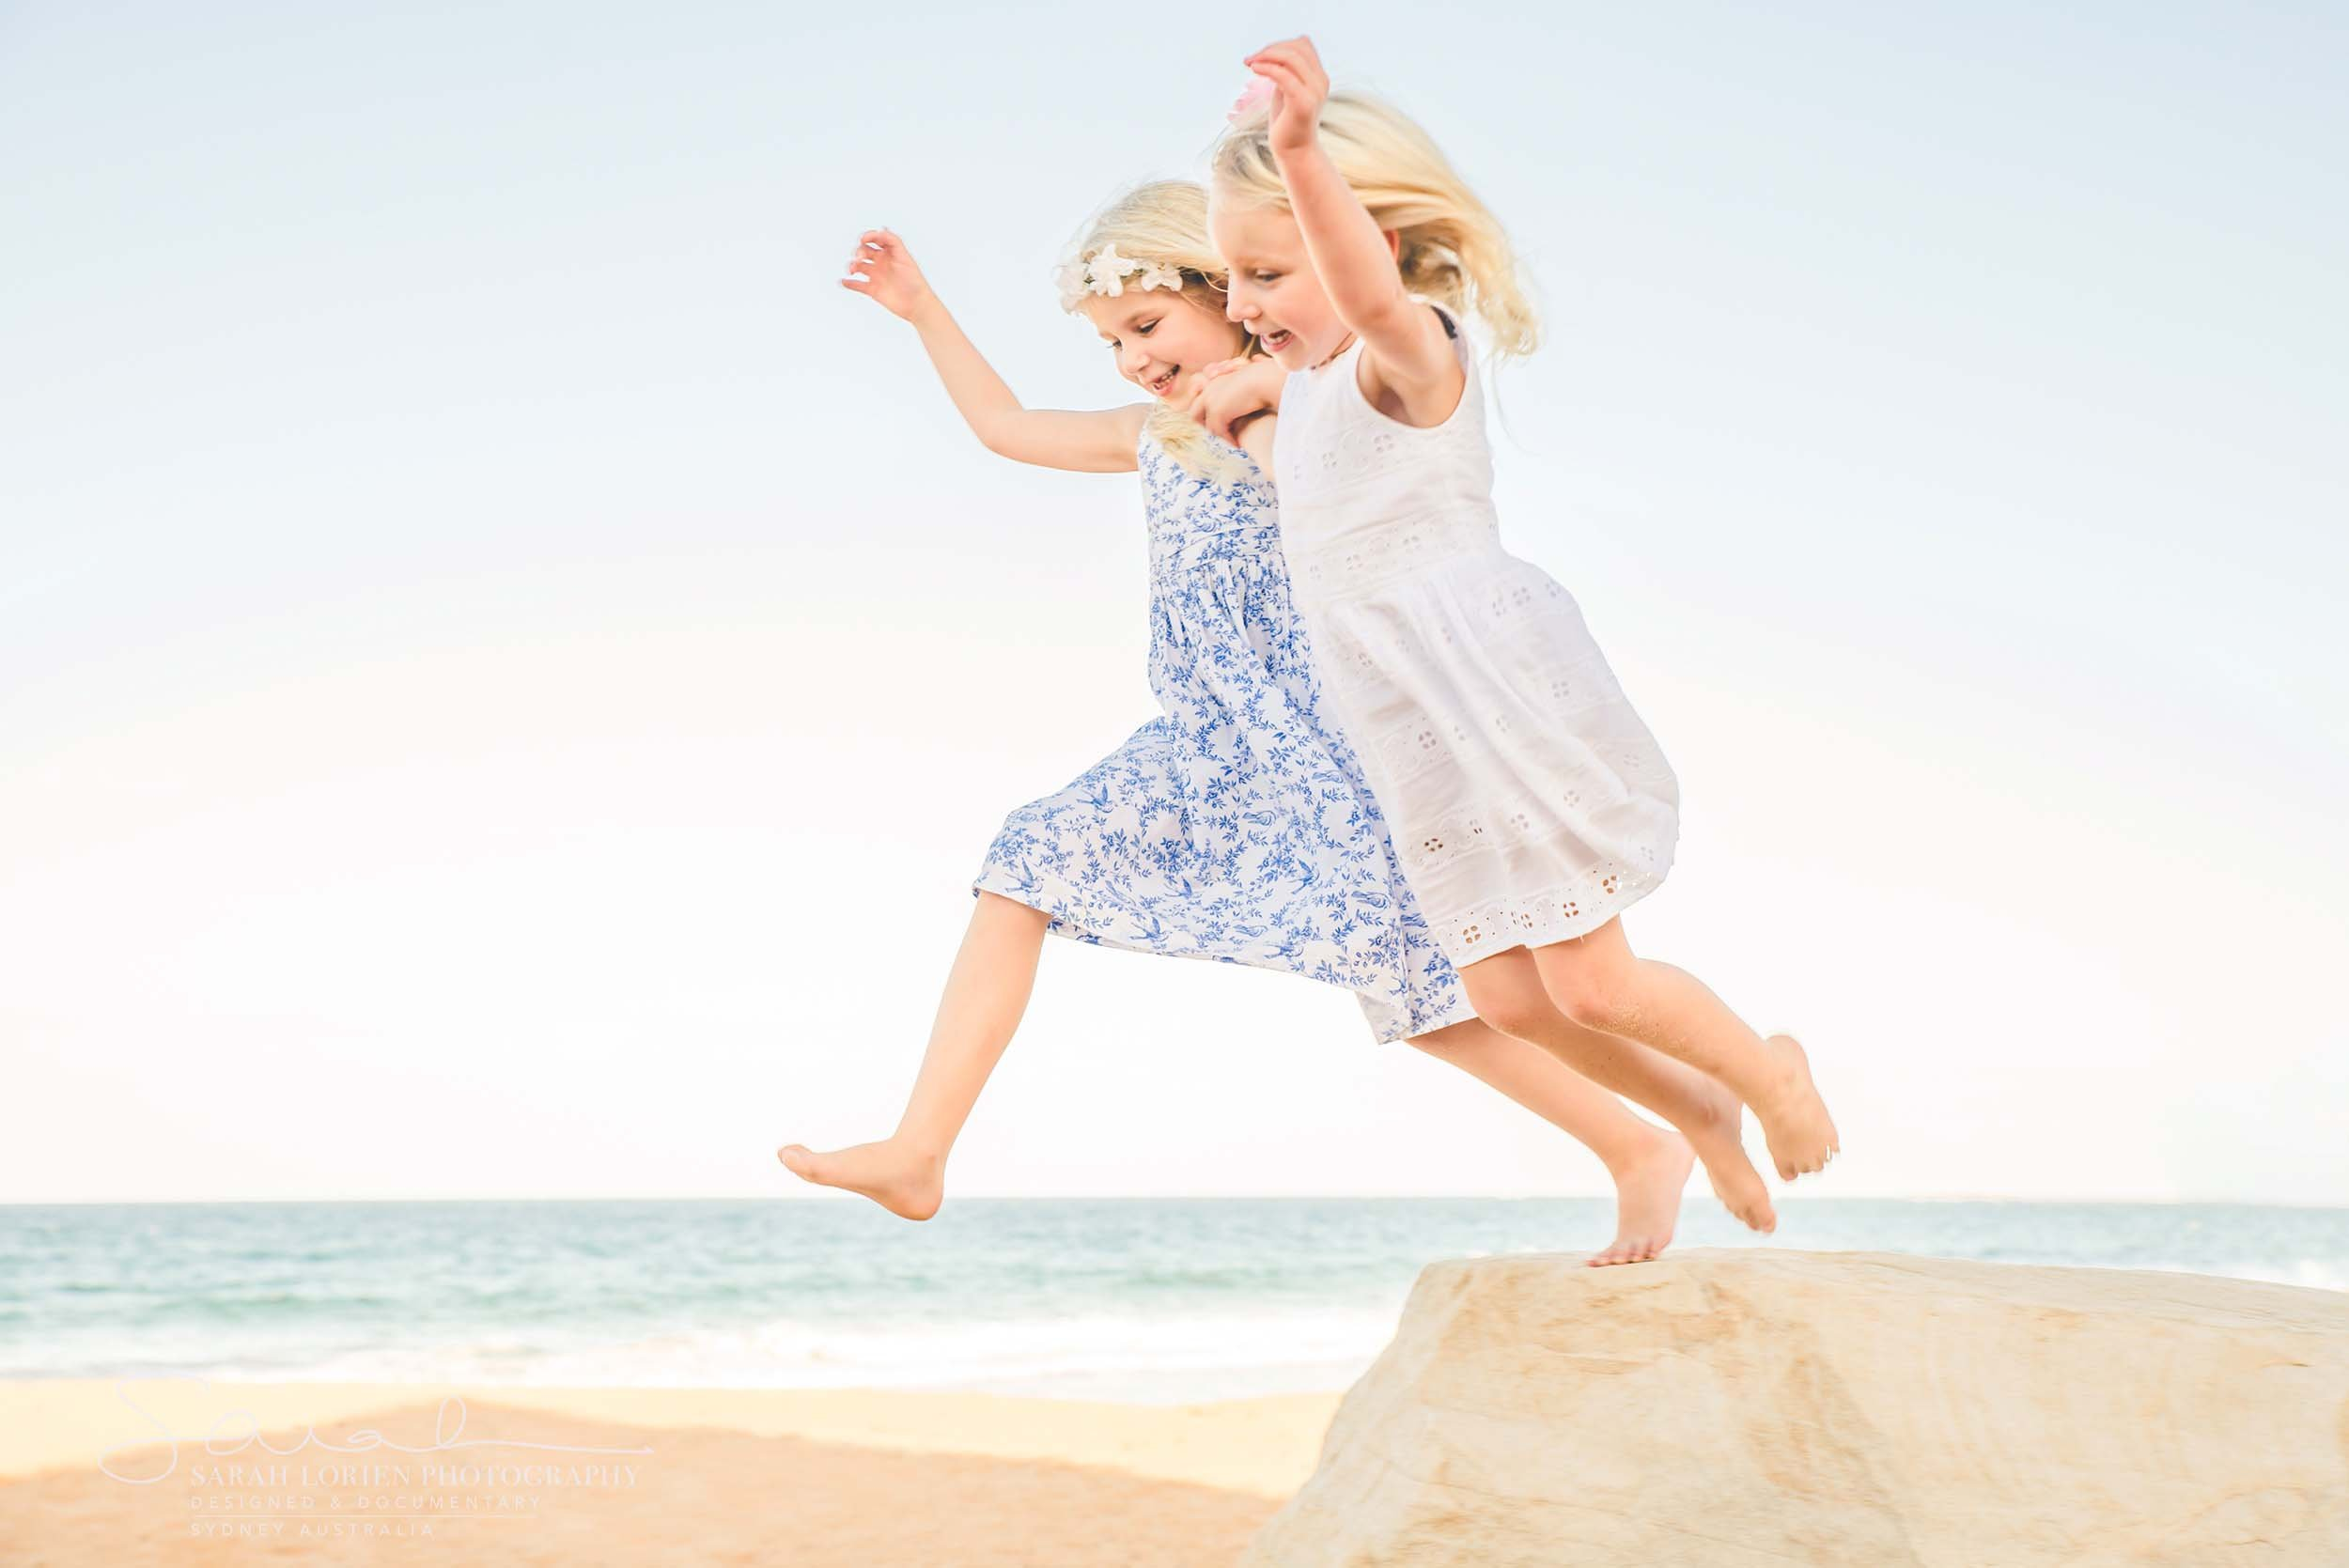 kids-photography-beach-lifestyle-sydney-SarahLorien